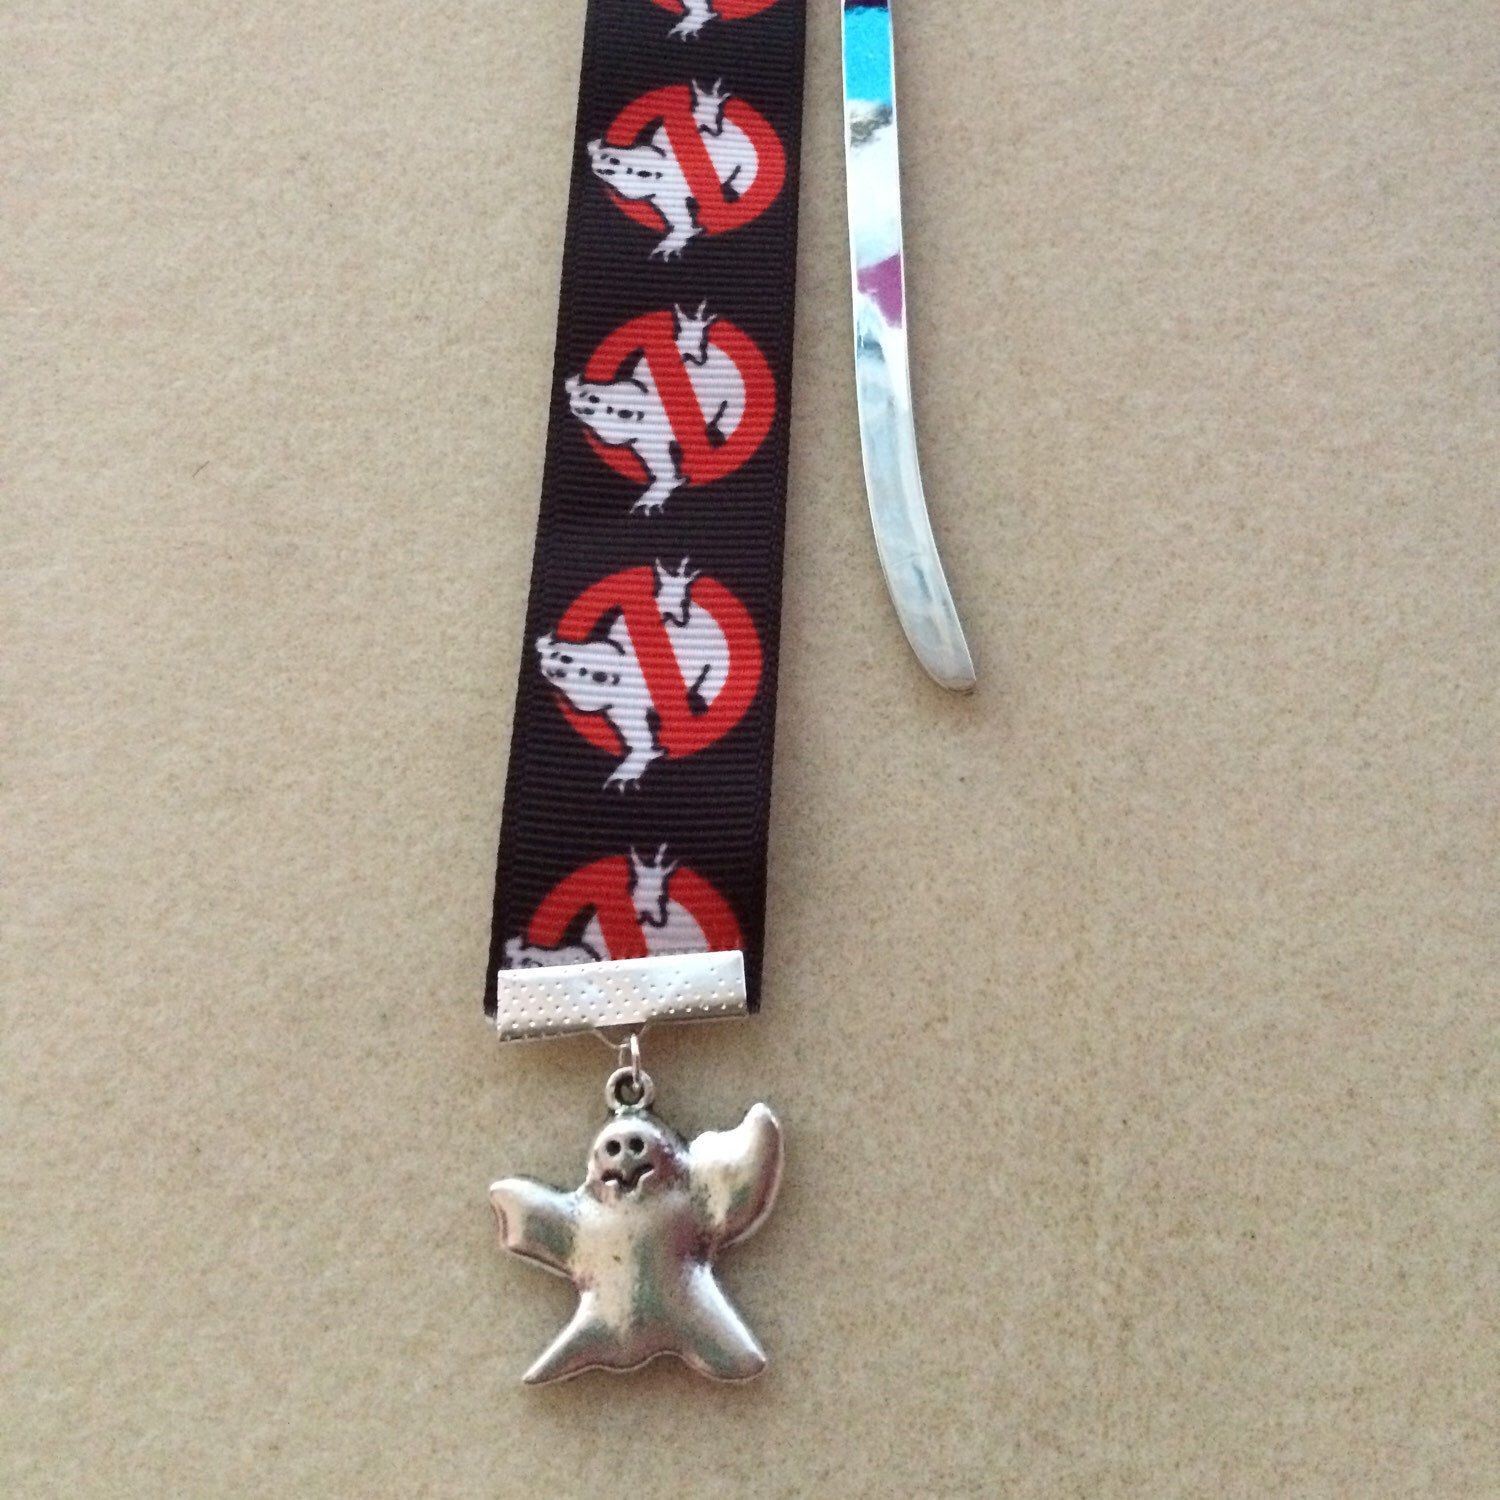 Hand-crafted Ghostbusters Logo inspired bookmarks now available.